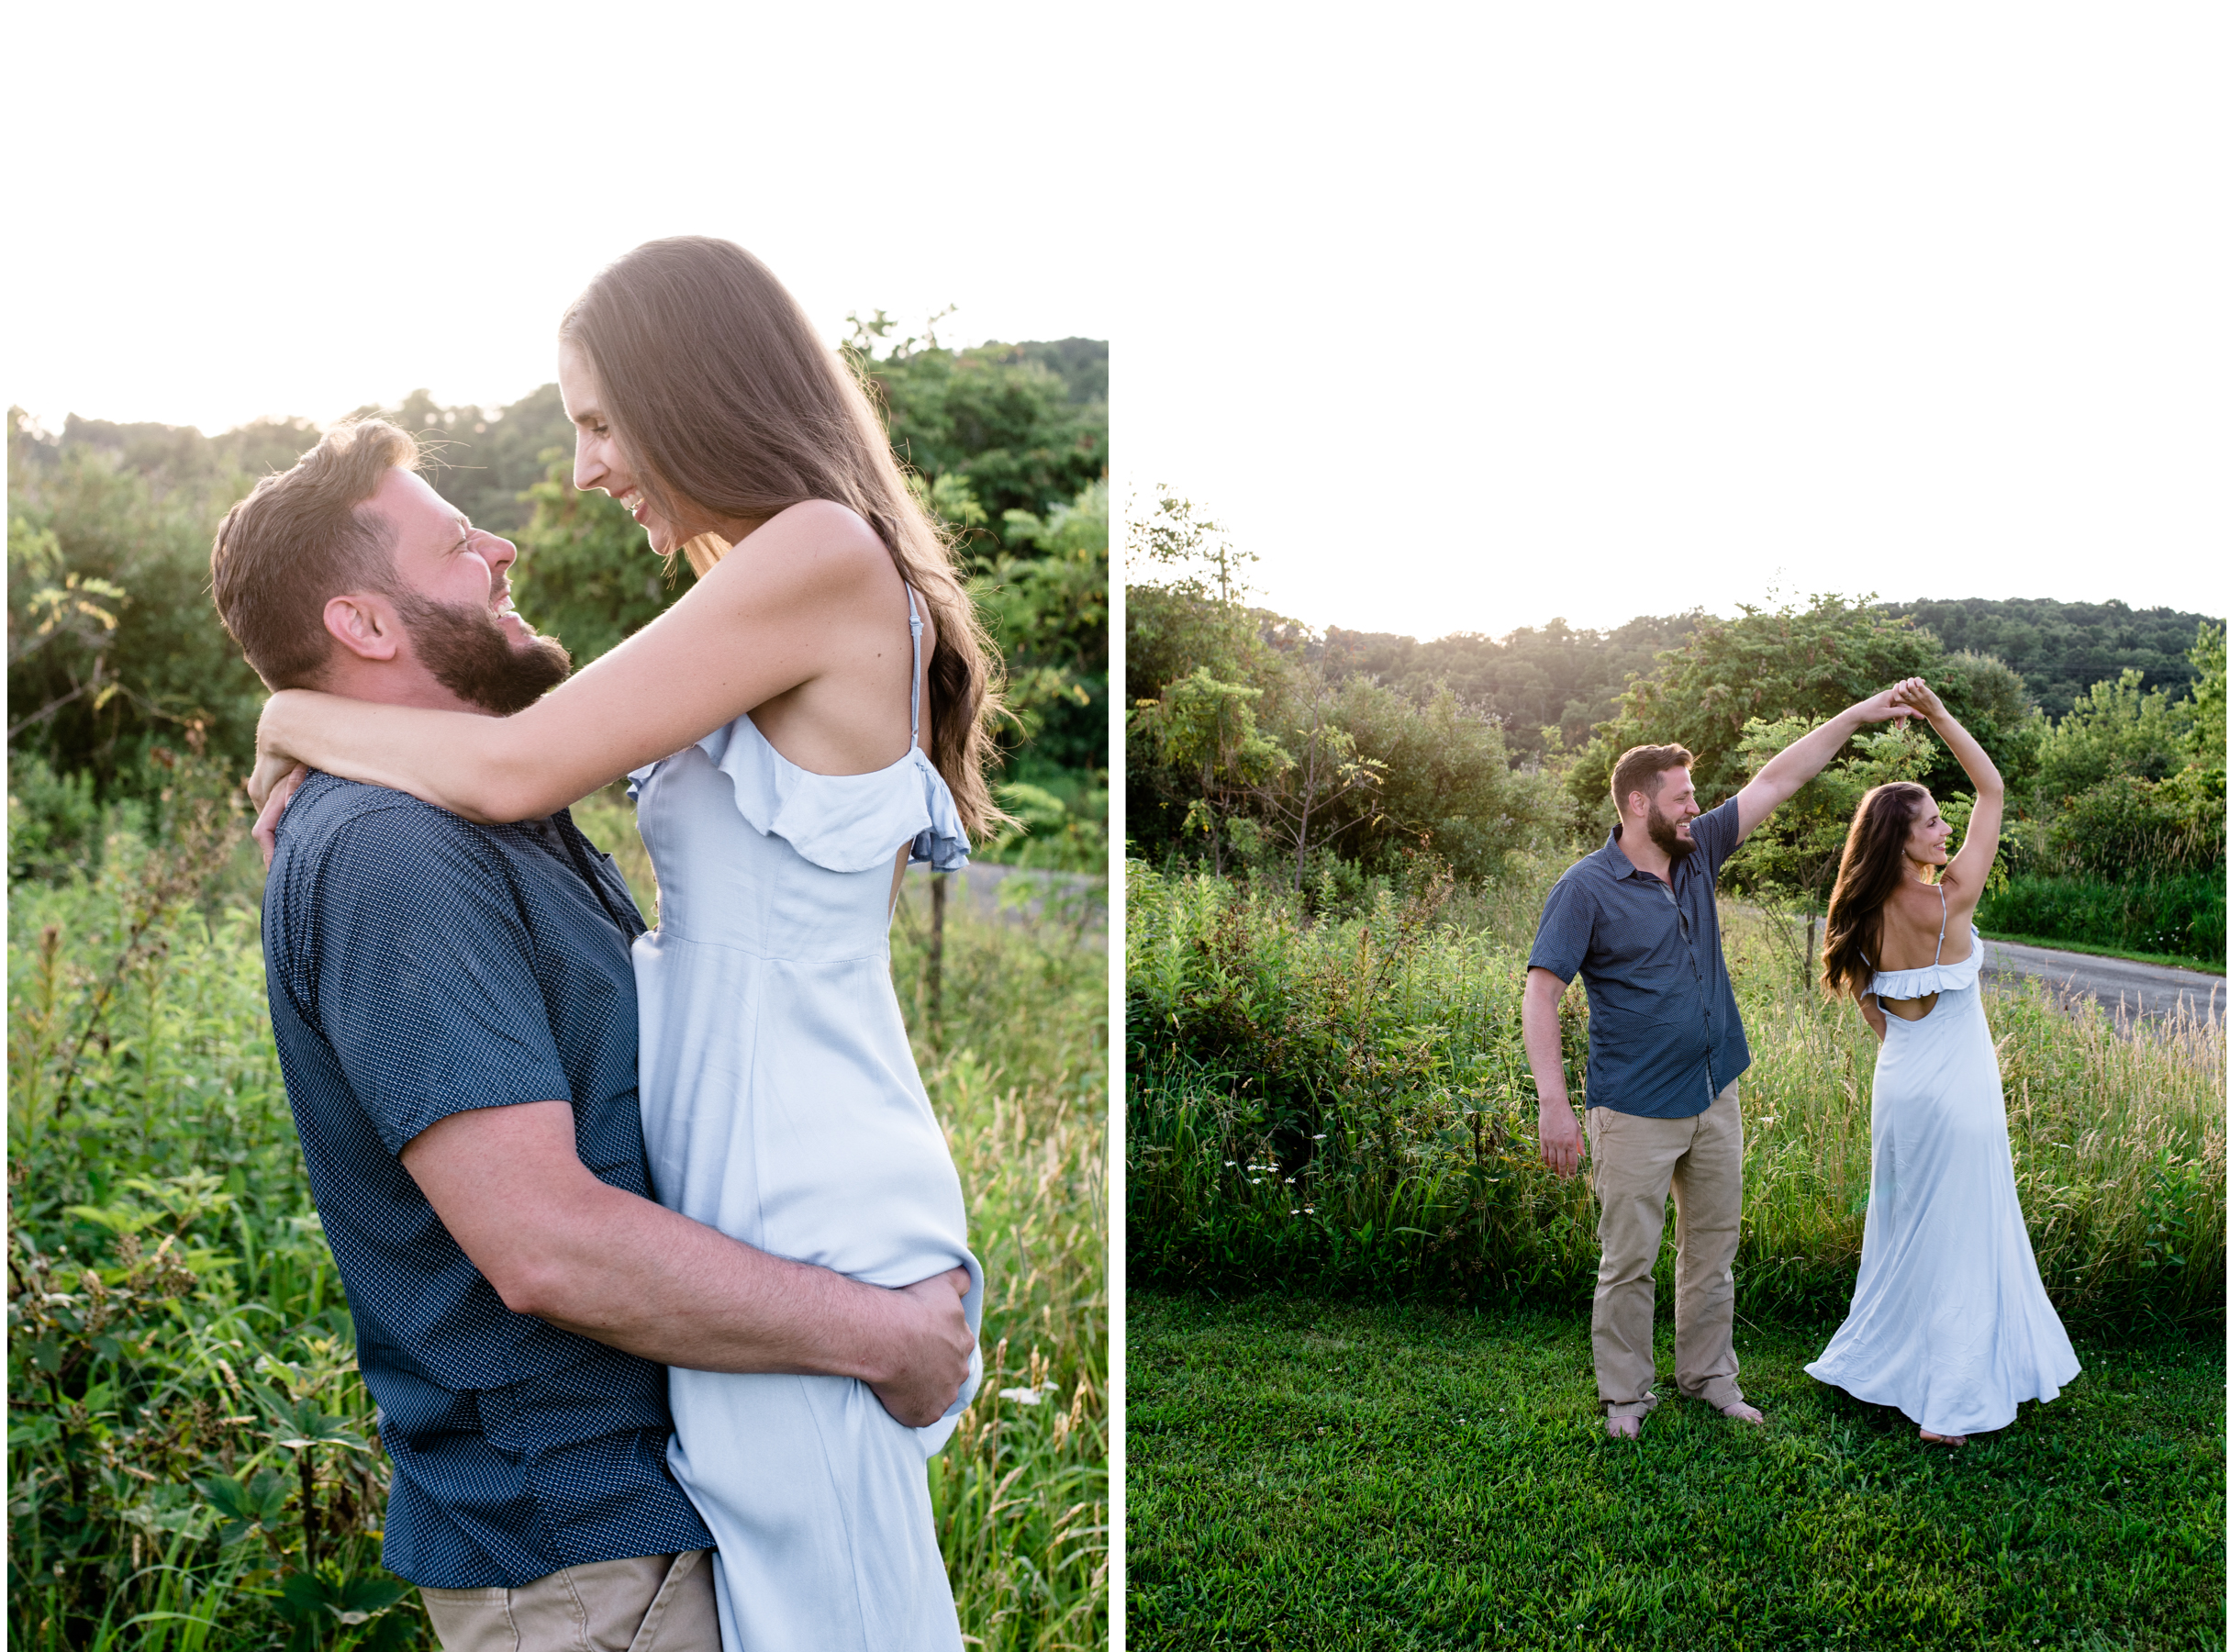 Engagement Session, Ligonier PA wedding photographer Mariah Fisher.jpg